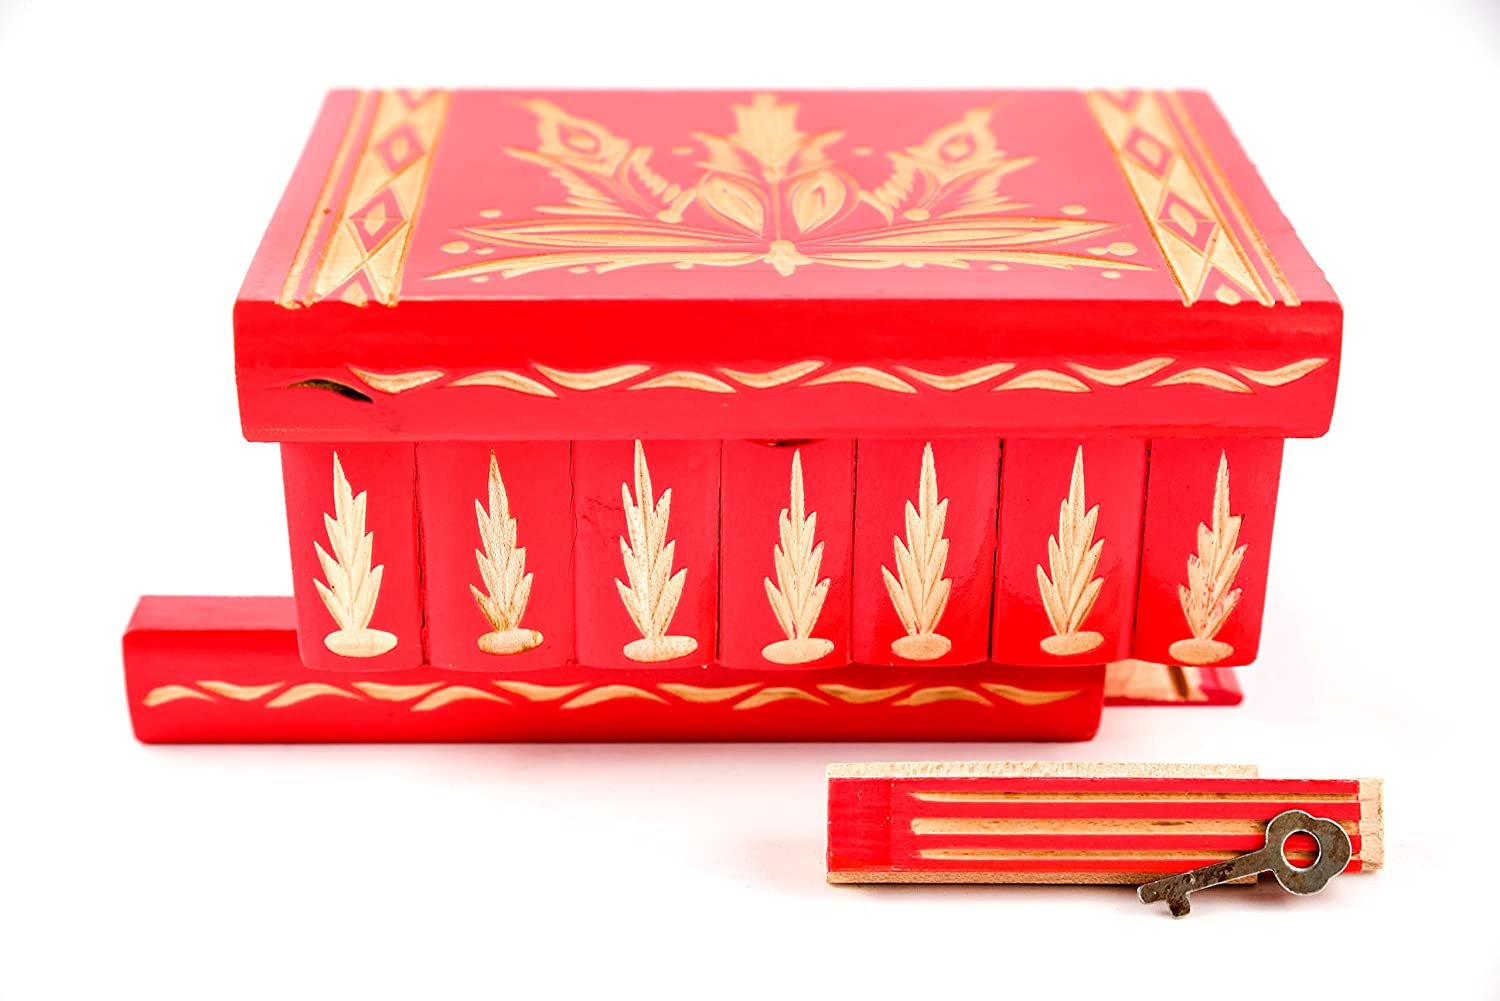 Handmade Wooden Case with Hidden Key and Removable Compartments Pink Beautiful Classical Wooden Carved Jewelry Puzzle Box Kalotart Jewelry and Puzzle Box 2 in 1